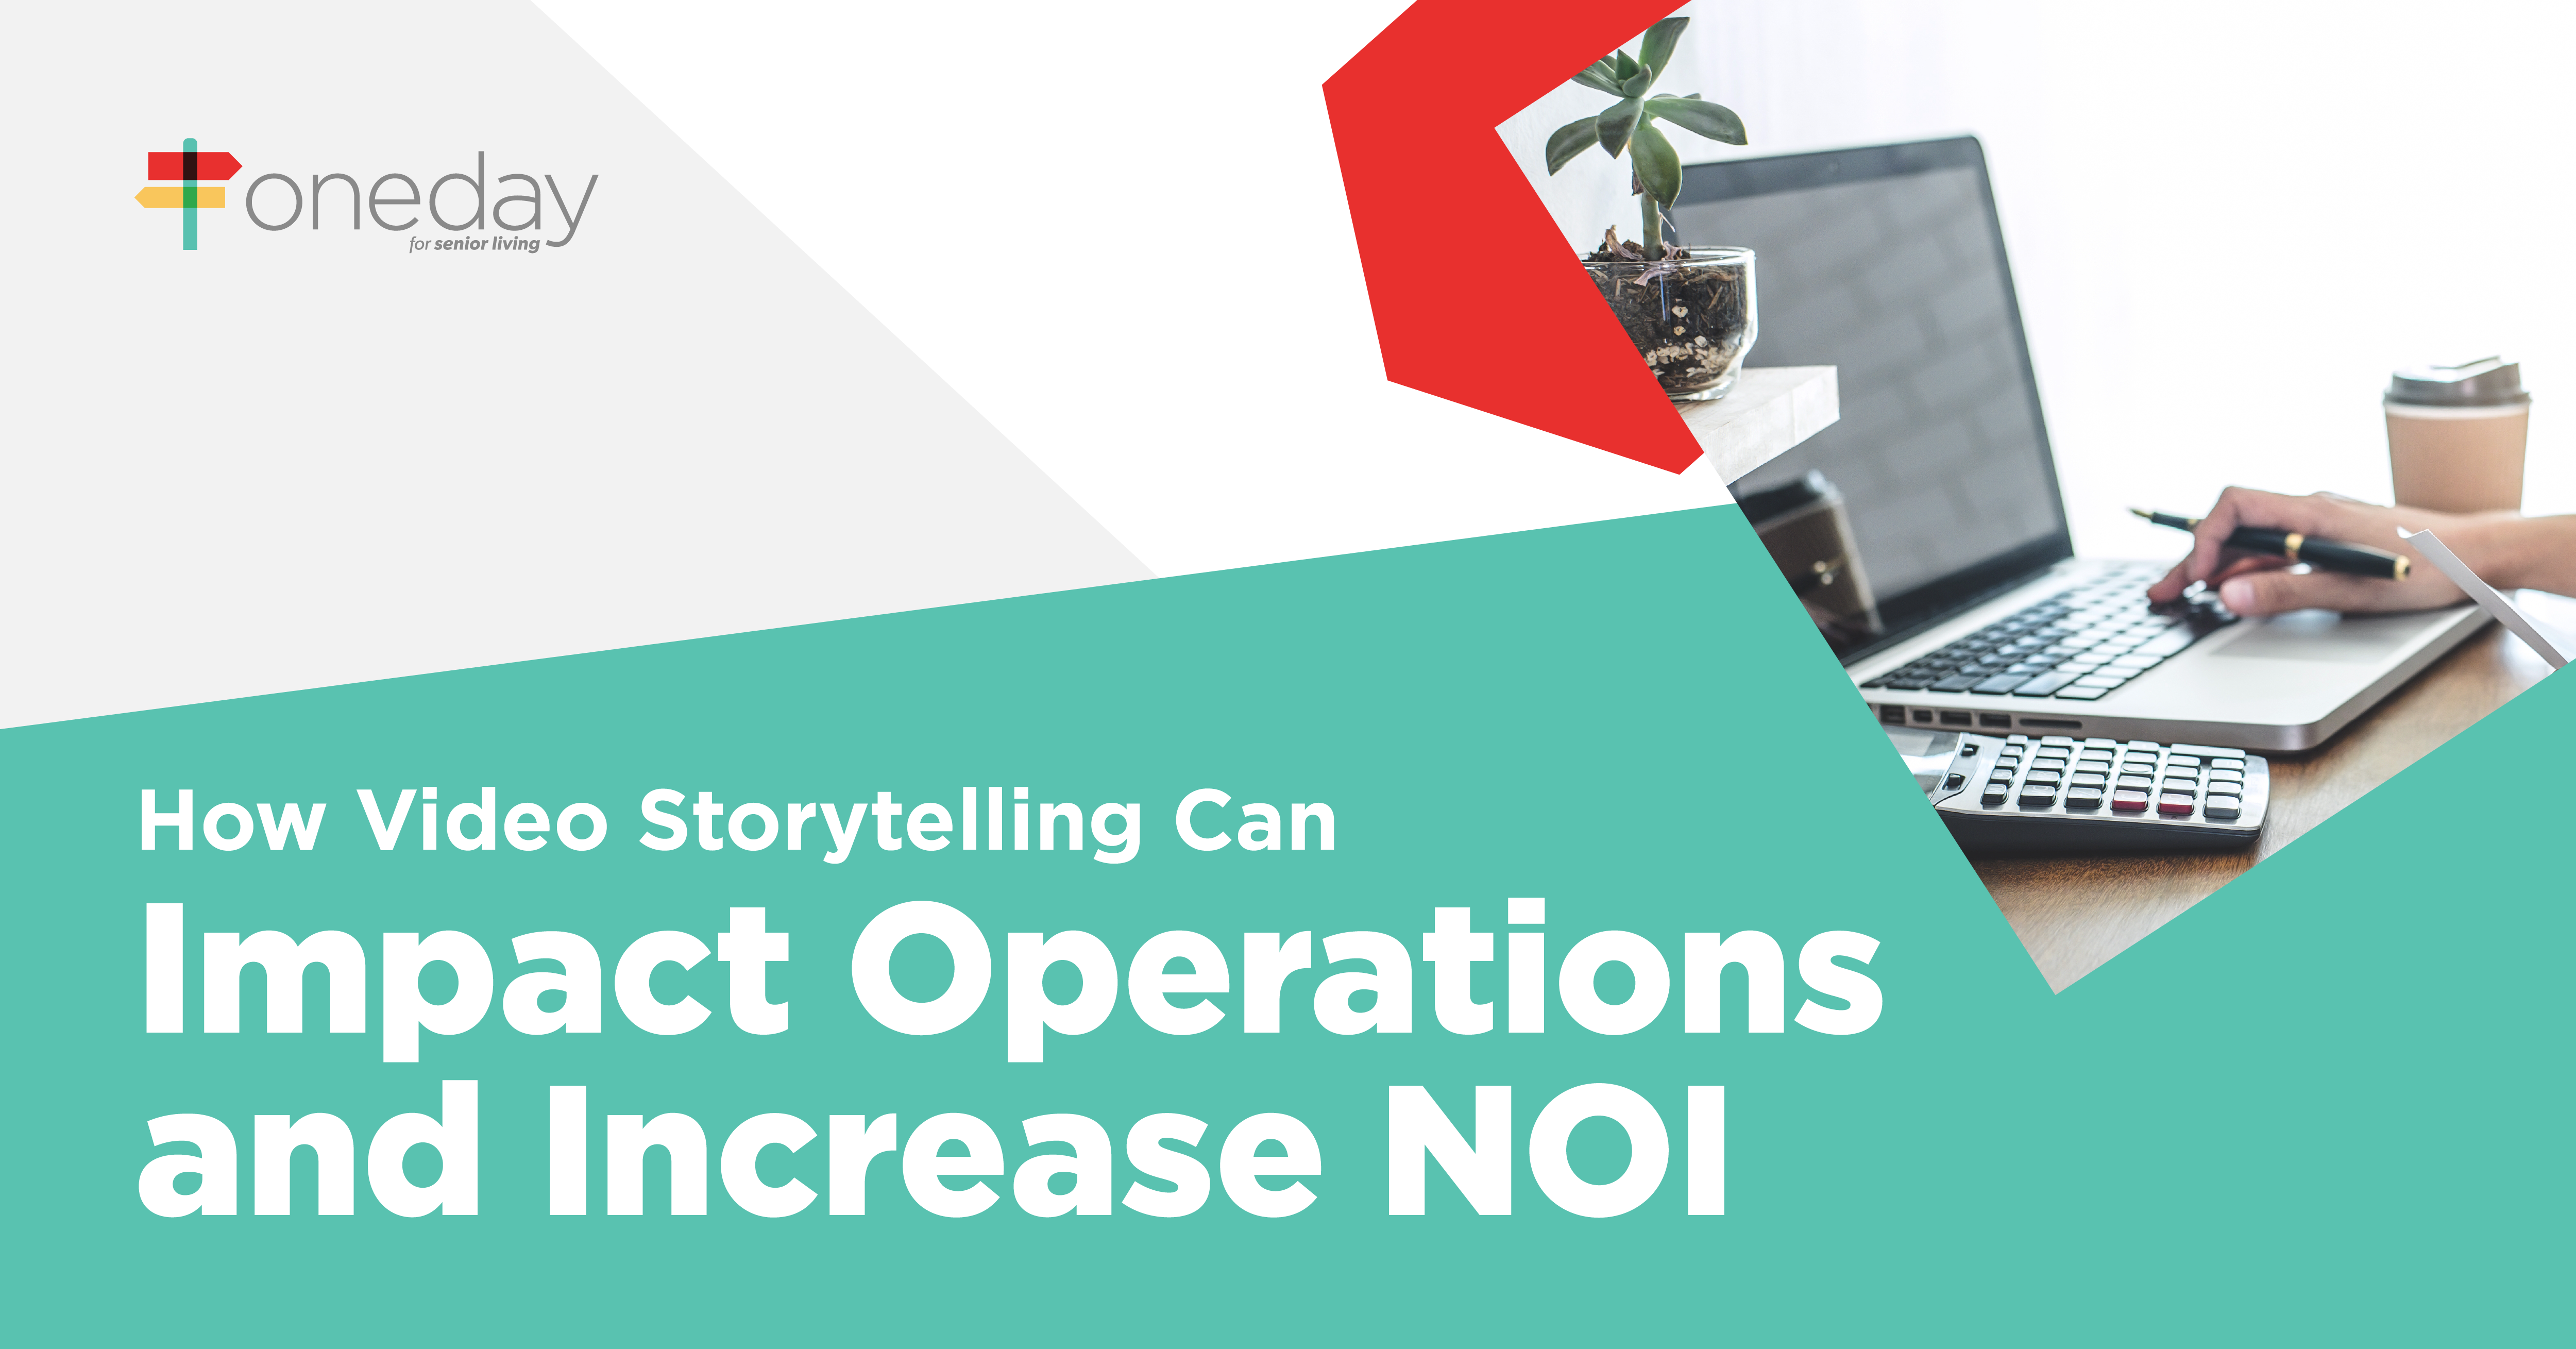 Insights on using OneDay's video sales and marketing platform to turn video storytelling into a powerful NOI driver for your senior living community.